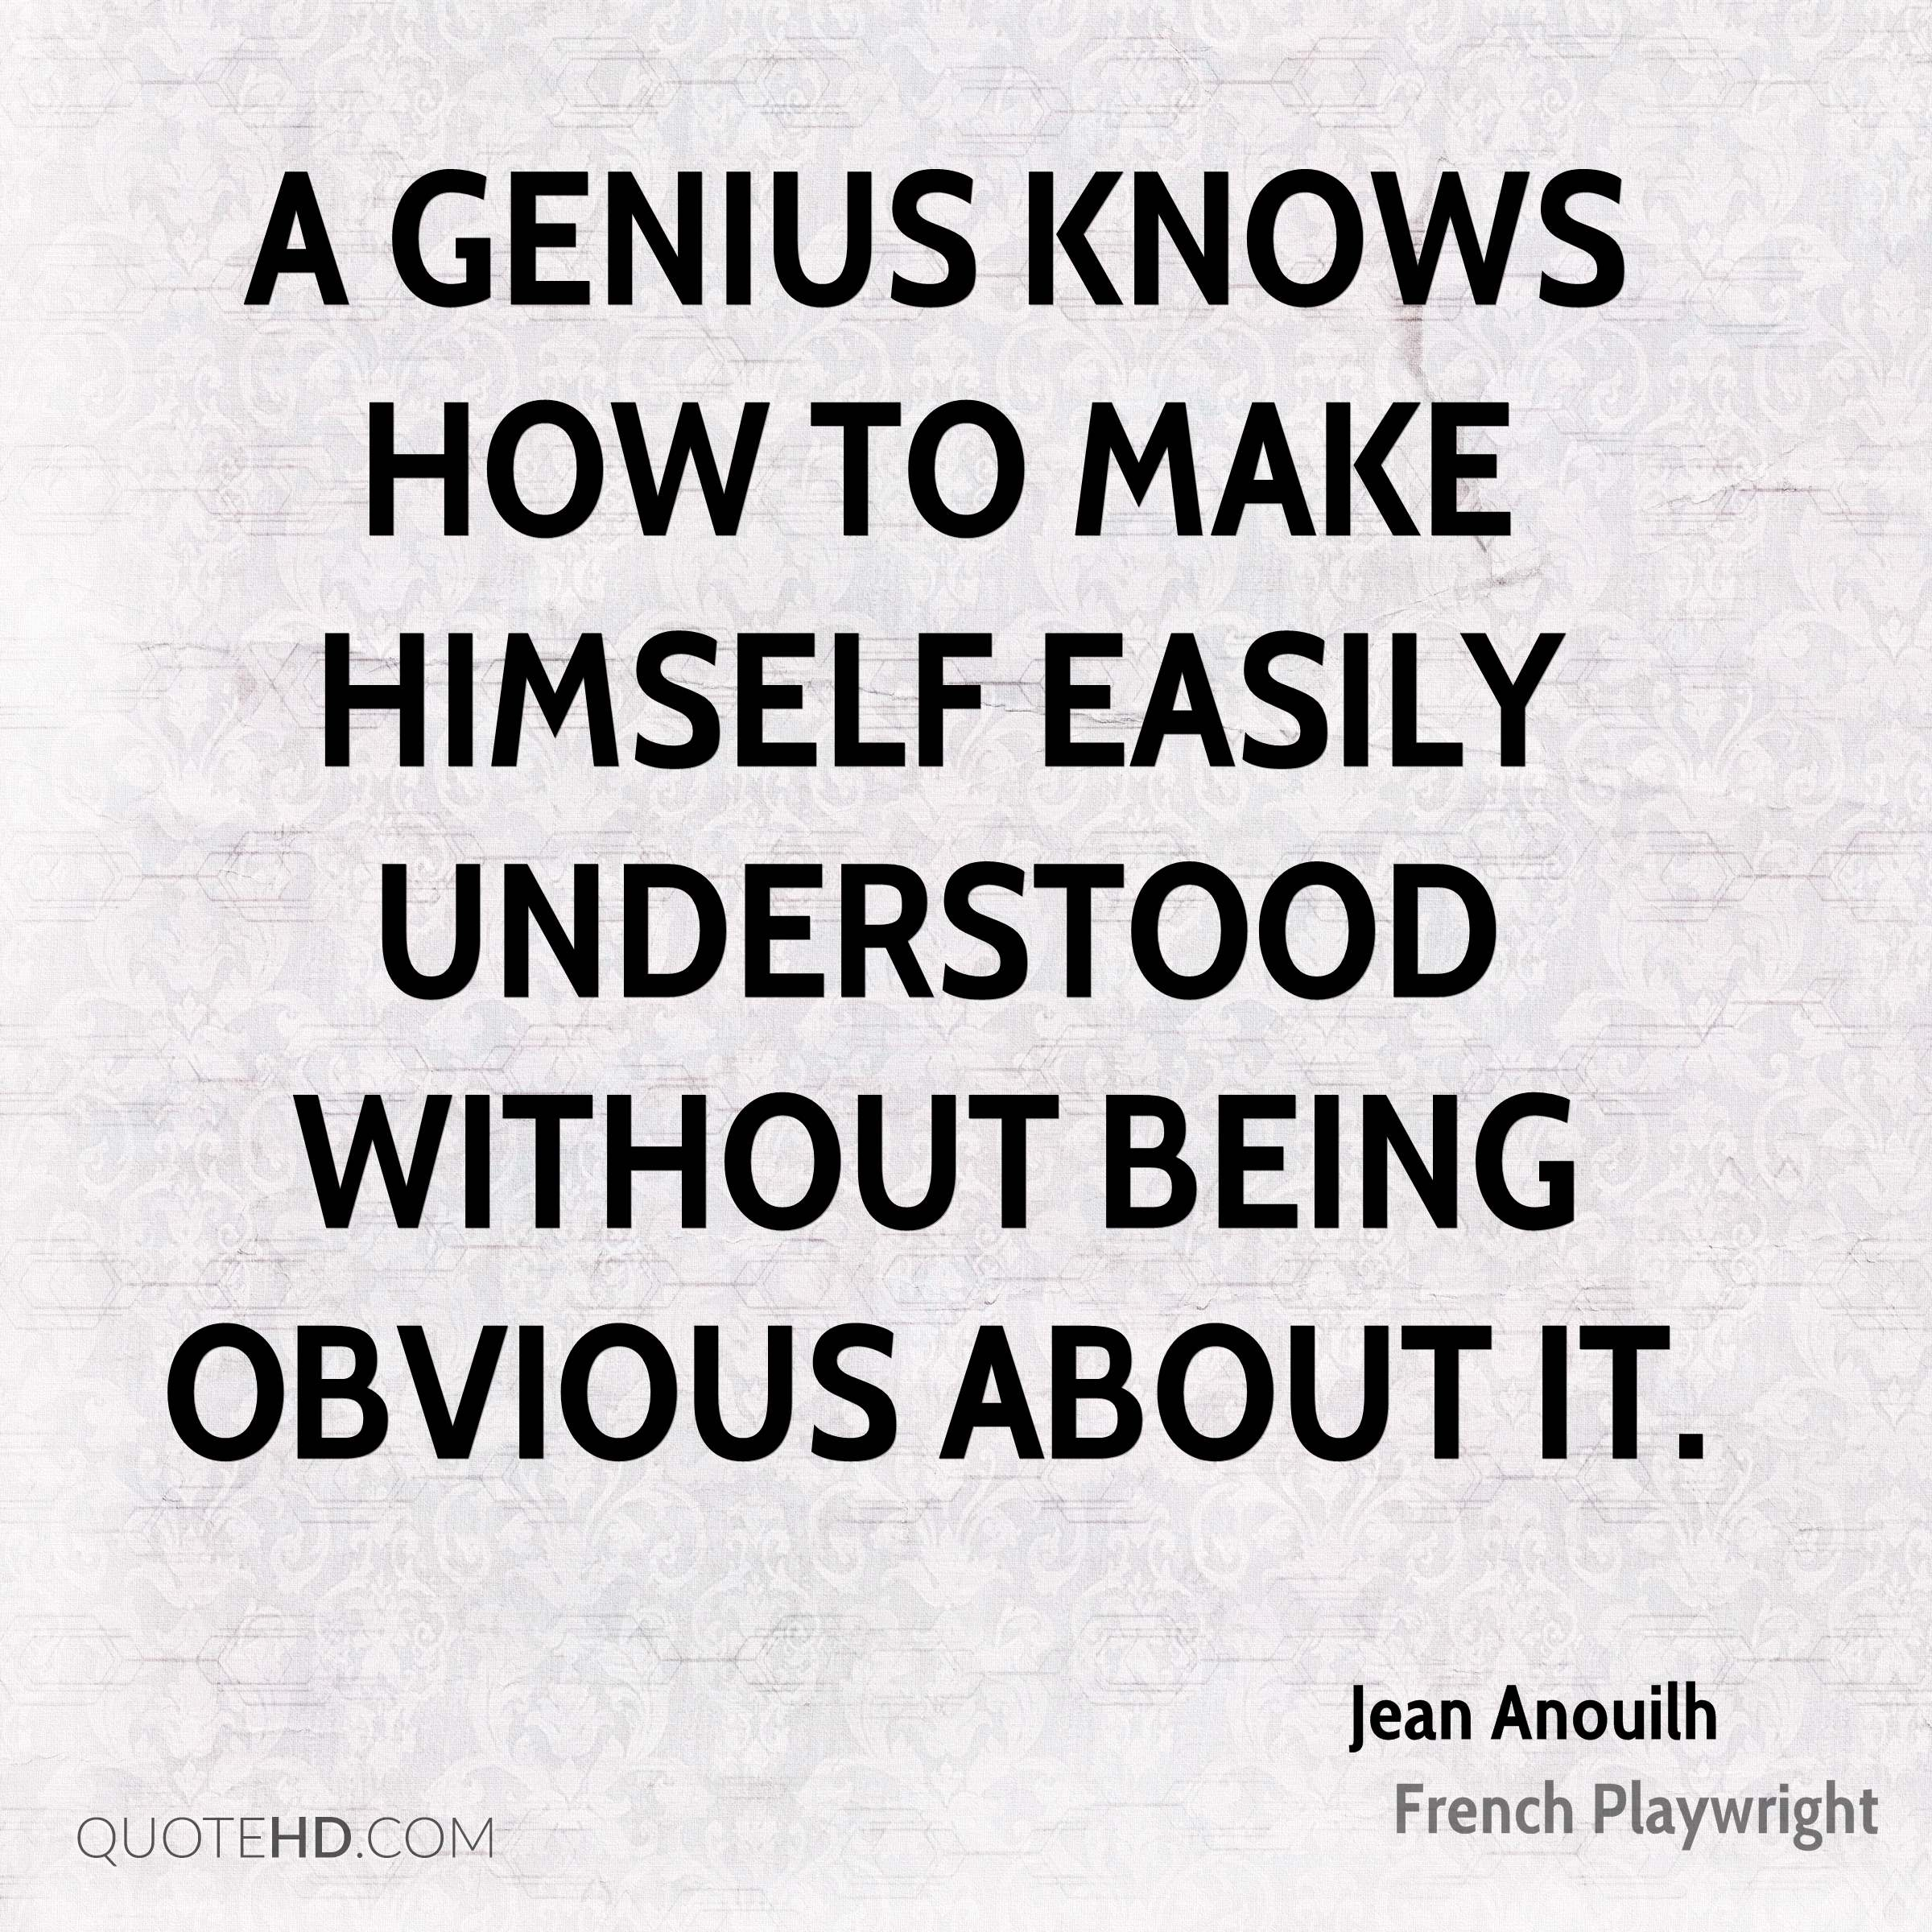 A genius knows how to make himself easily understood without being obvious about it.